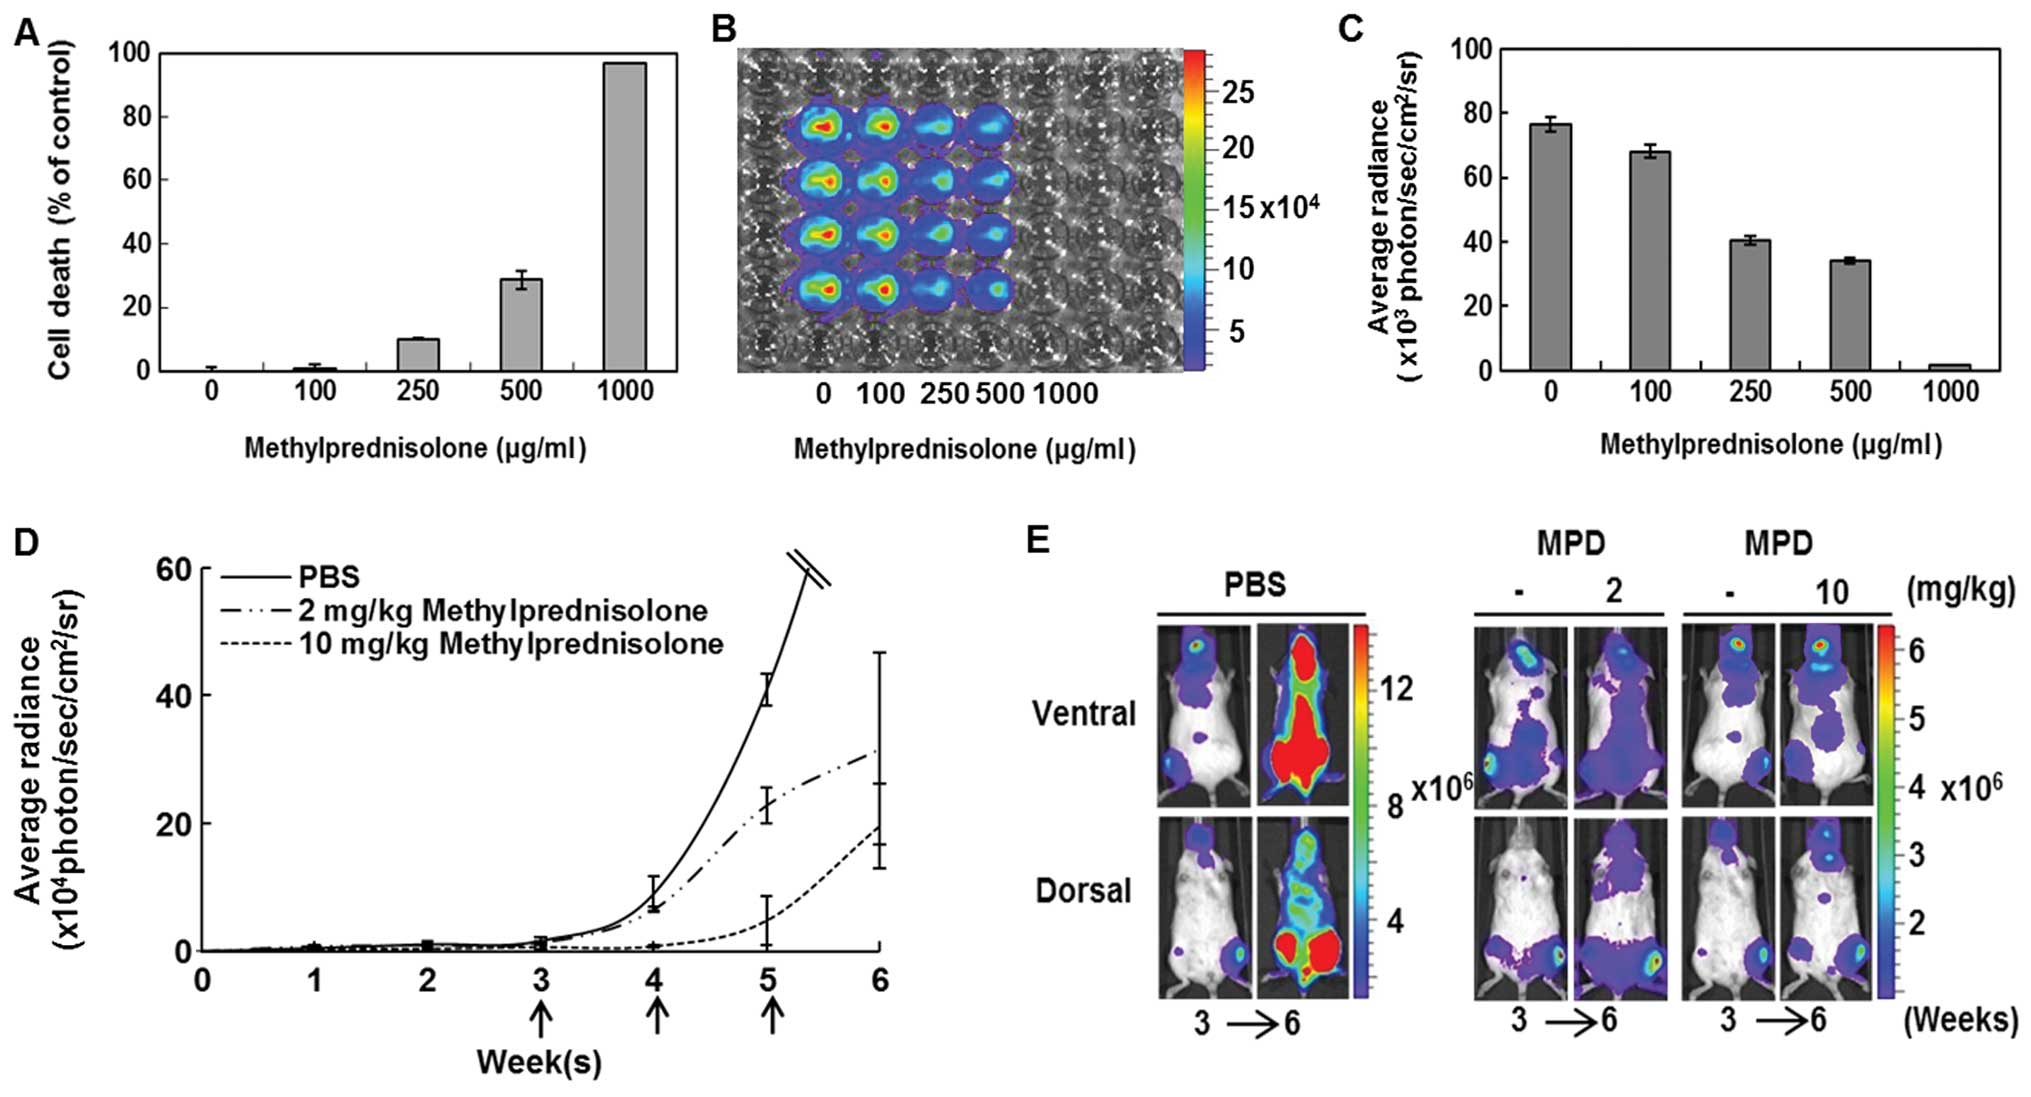 establishment of a bioluminescent imaging based in vivo leukemia(e), bioluminescent leukemia responses in control mouse and to 2 and 10 mg kg methylprednisolone (mpd) were evaluated by comparing images before treatment